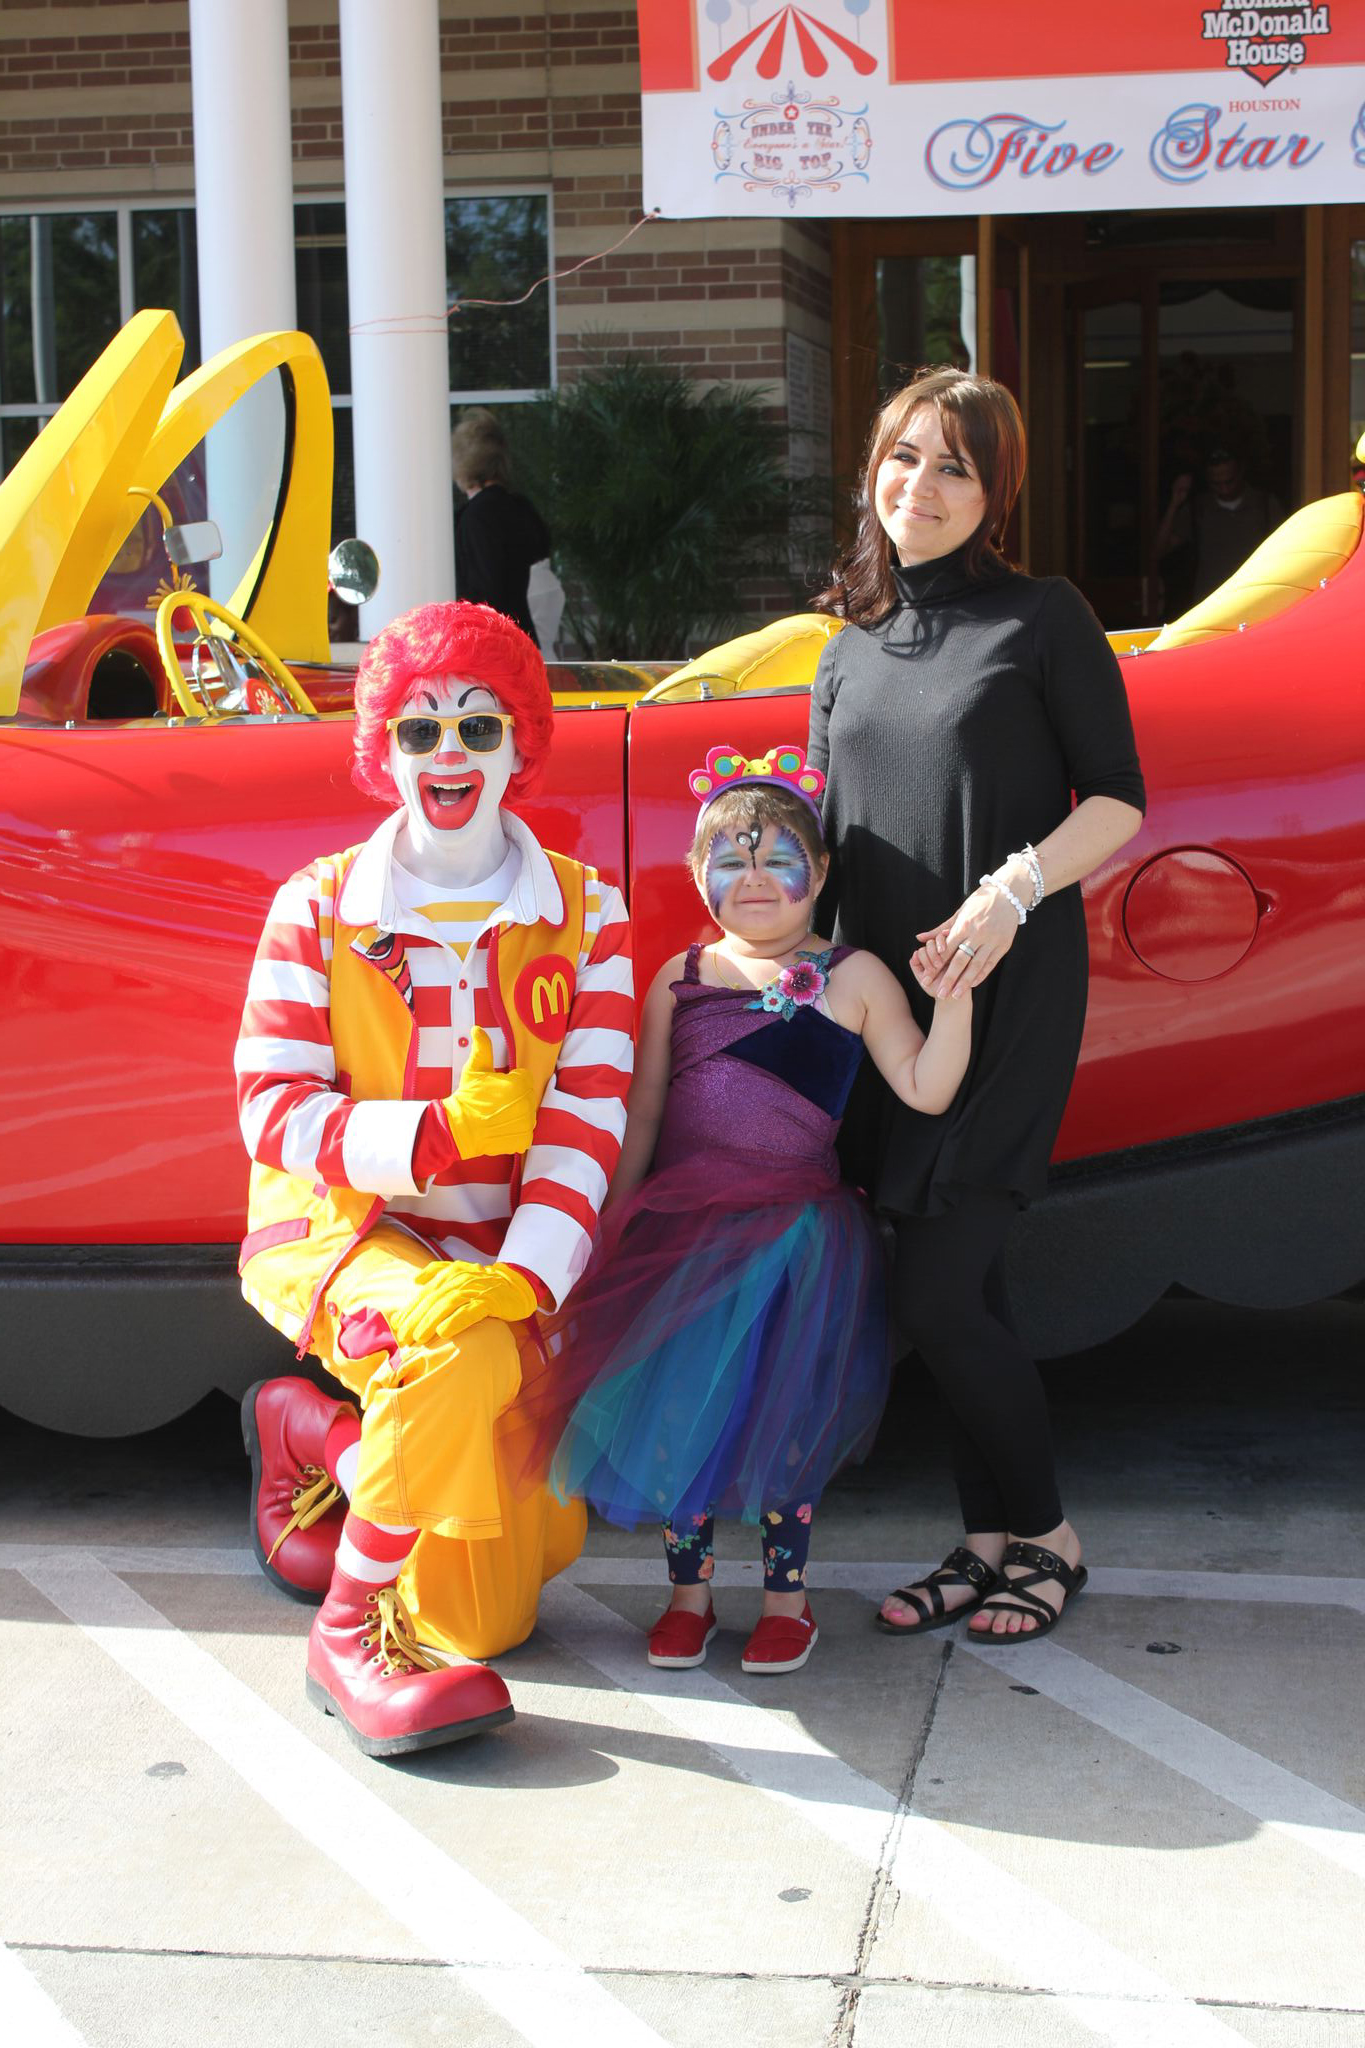 Sick children and their families received 5 star treatment at ronald sick children and their families received 5 star treatment at ronald mcdonald house houston thanks to magnolia hotels and pwc charitable foundation voltagebd Gallery